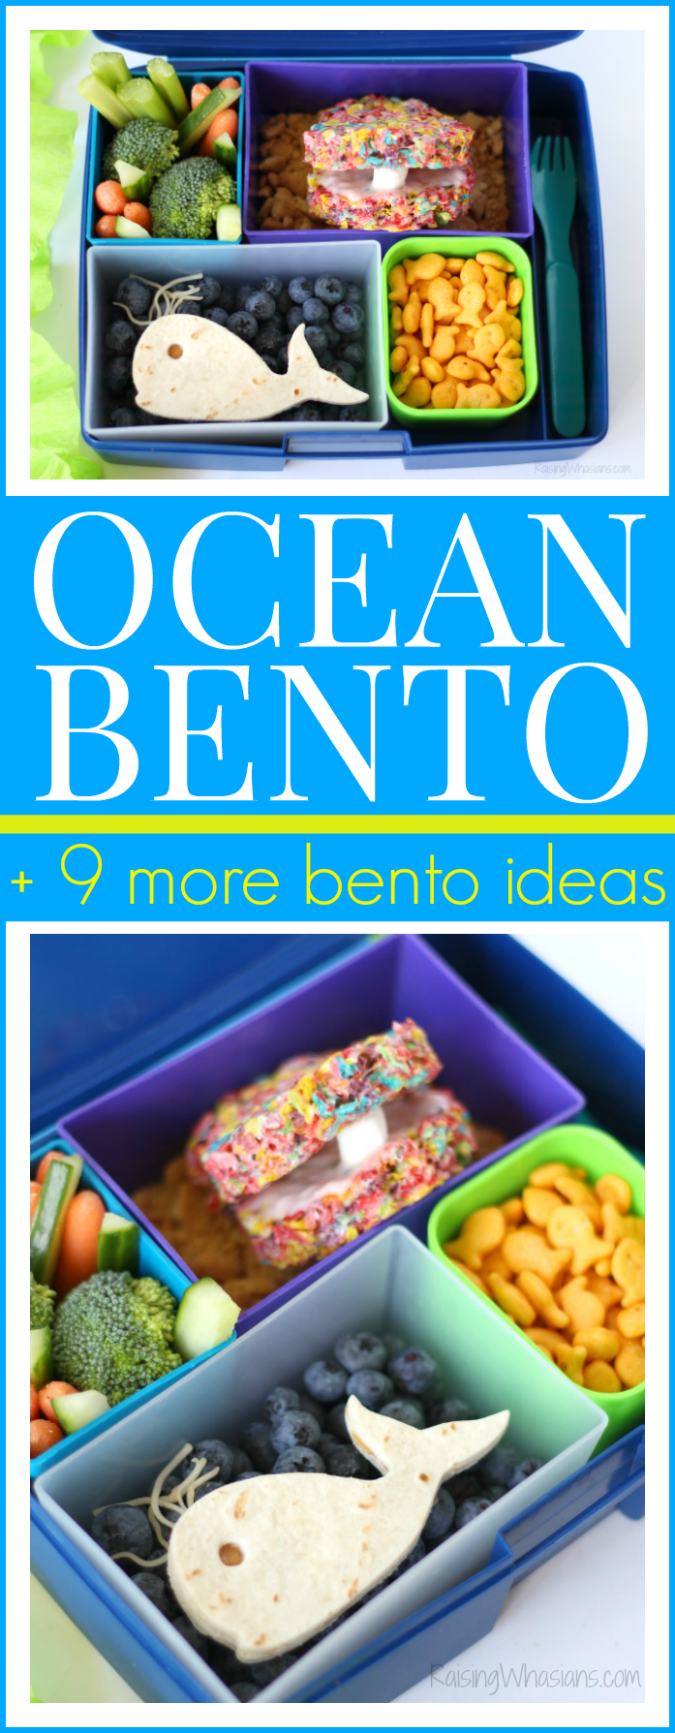 Ocean Bento Lunch Ideas + Pearl Oyster Cereal Treats   head back-to-school with this list of easy bento lunchbox ideas + pearl oyster cereal treats #Recipe #Dessert #Snack